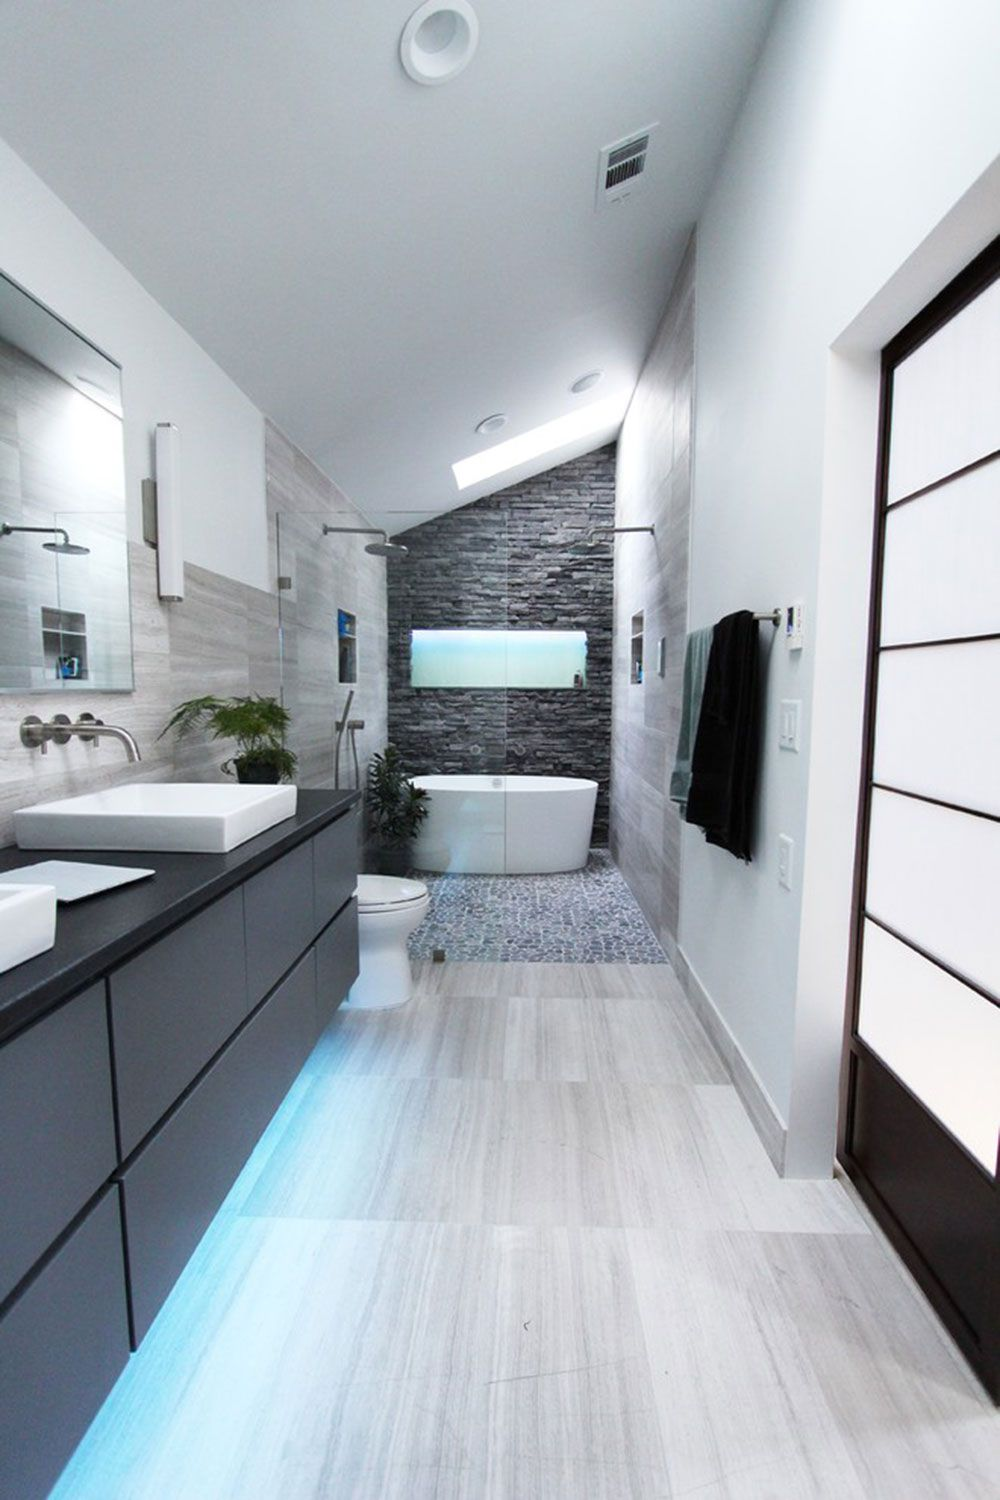 Photos And Examples Of How To Choose The Best Bathroom Tiles ...